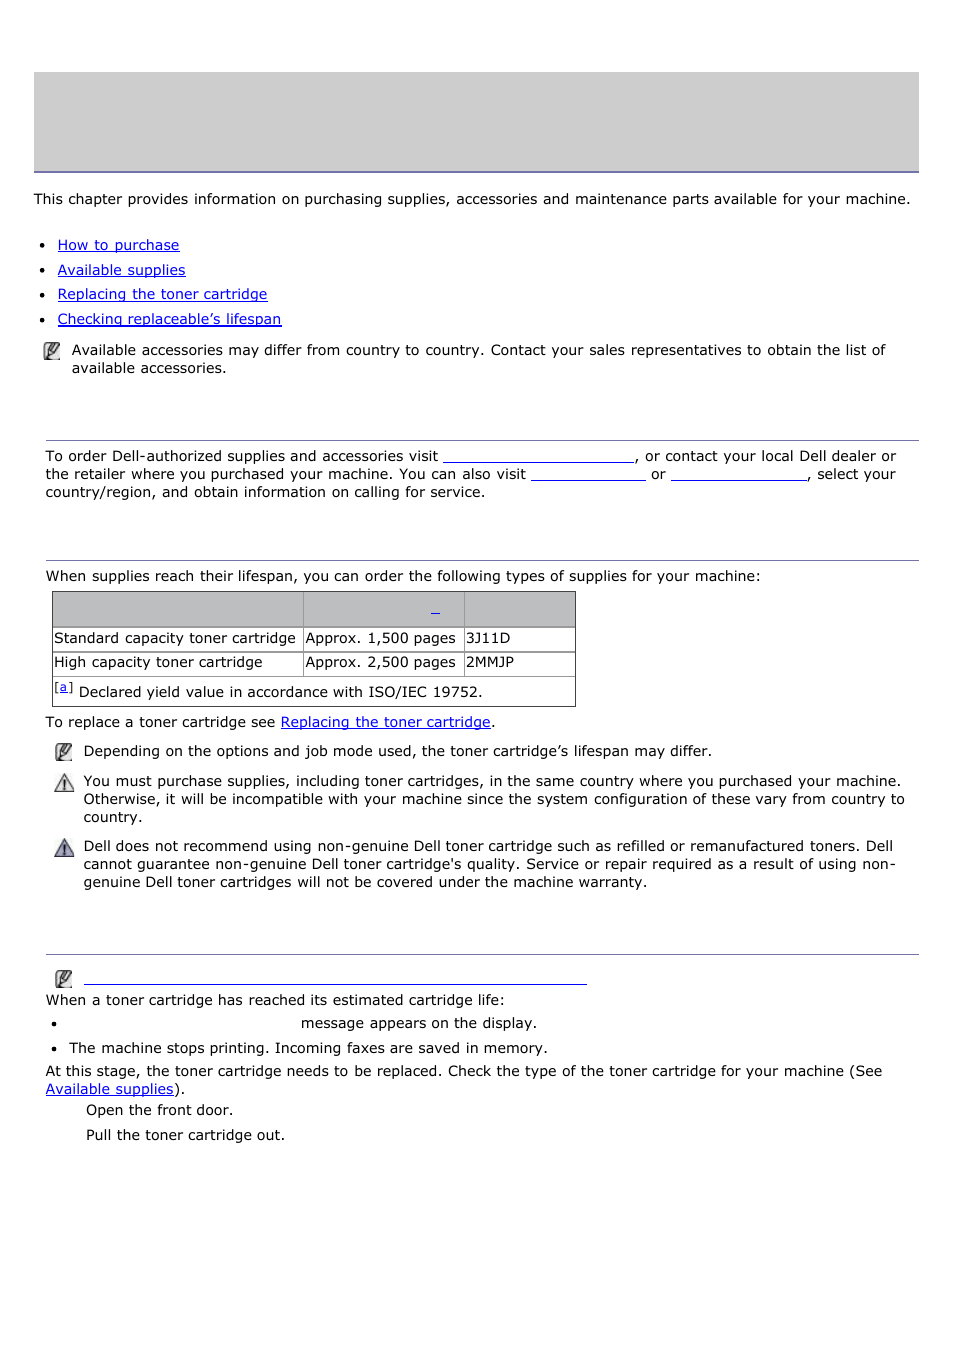 Supplies and accessories, Replacing the, Toner cartridge | How to purchase,  Available supplies